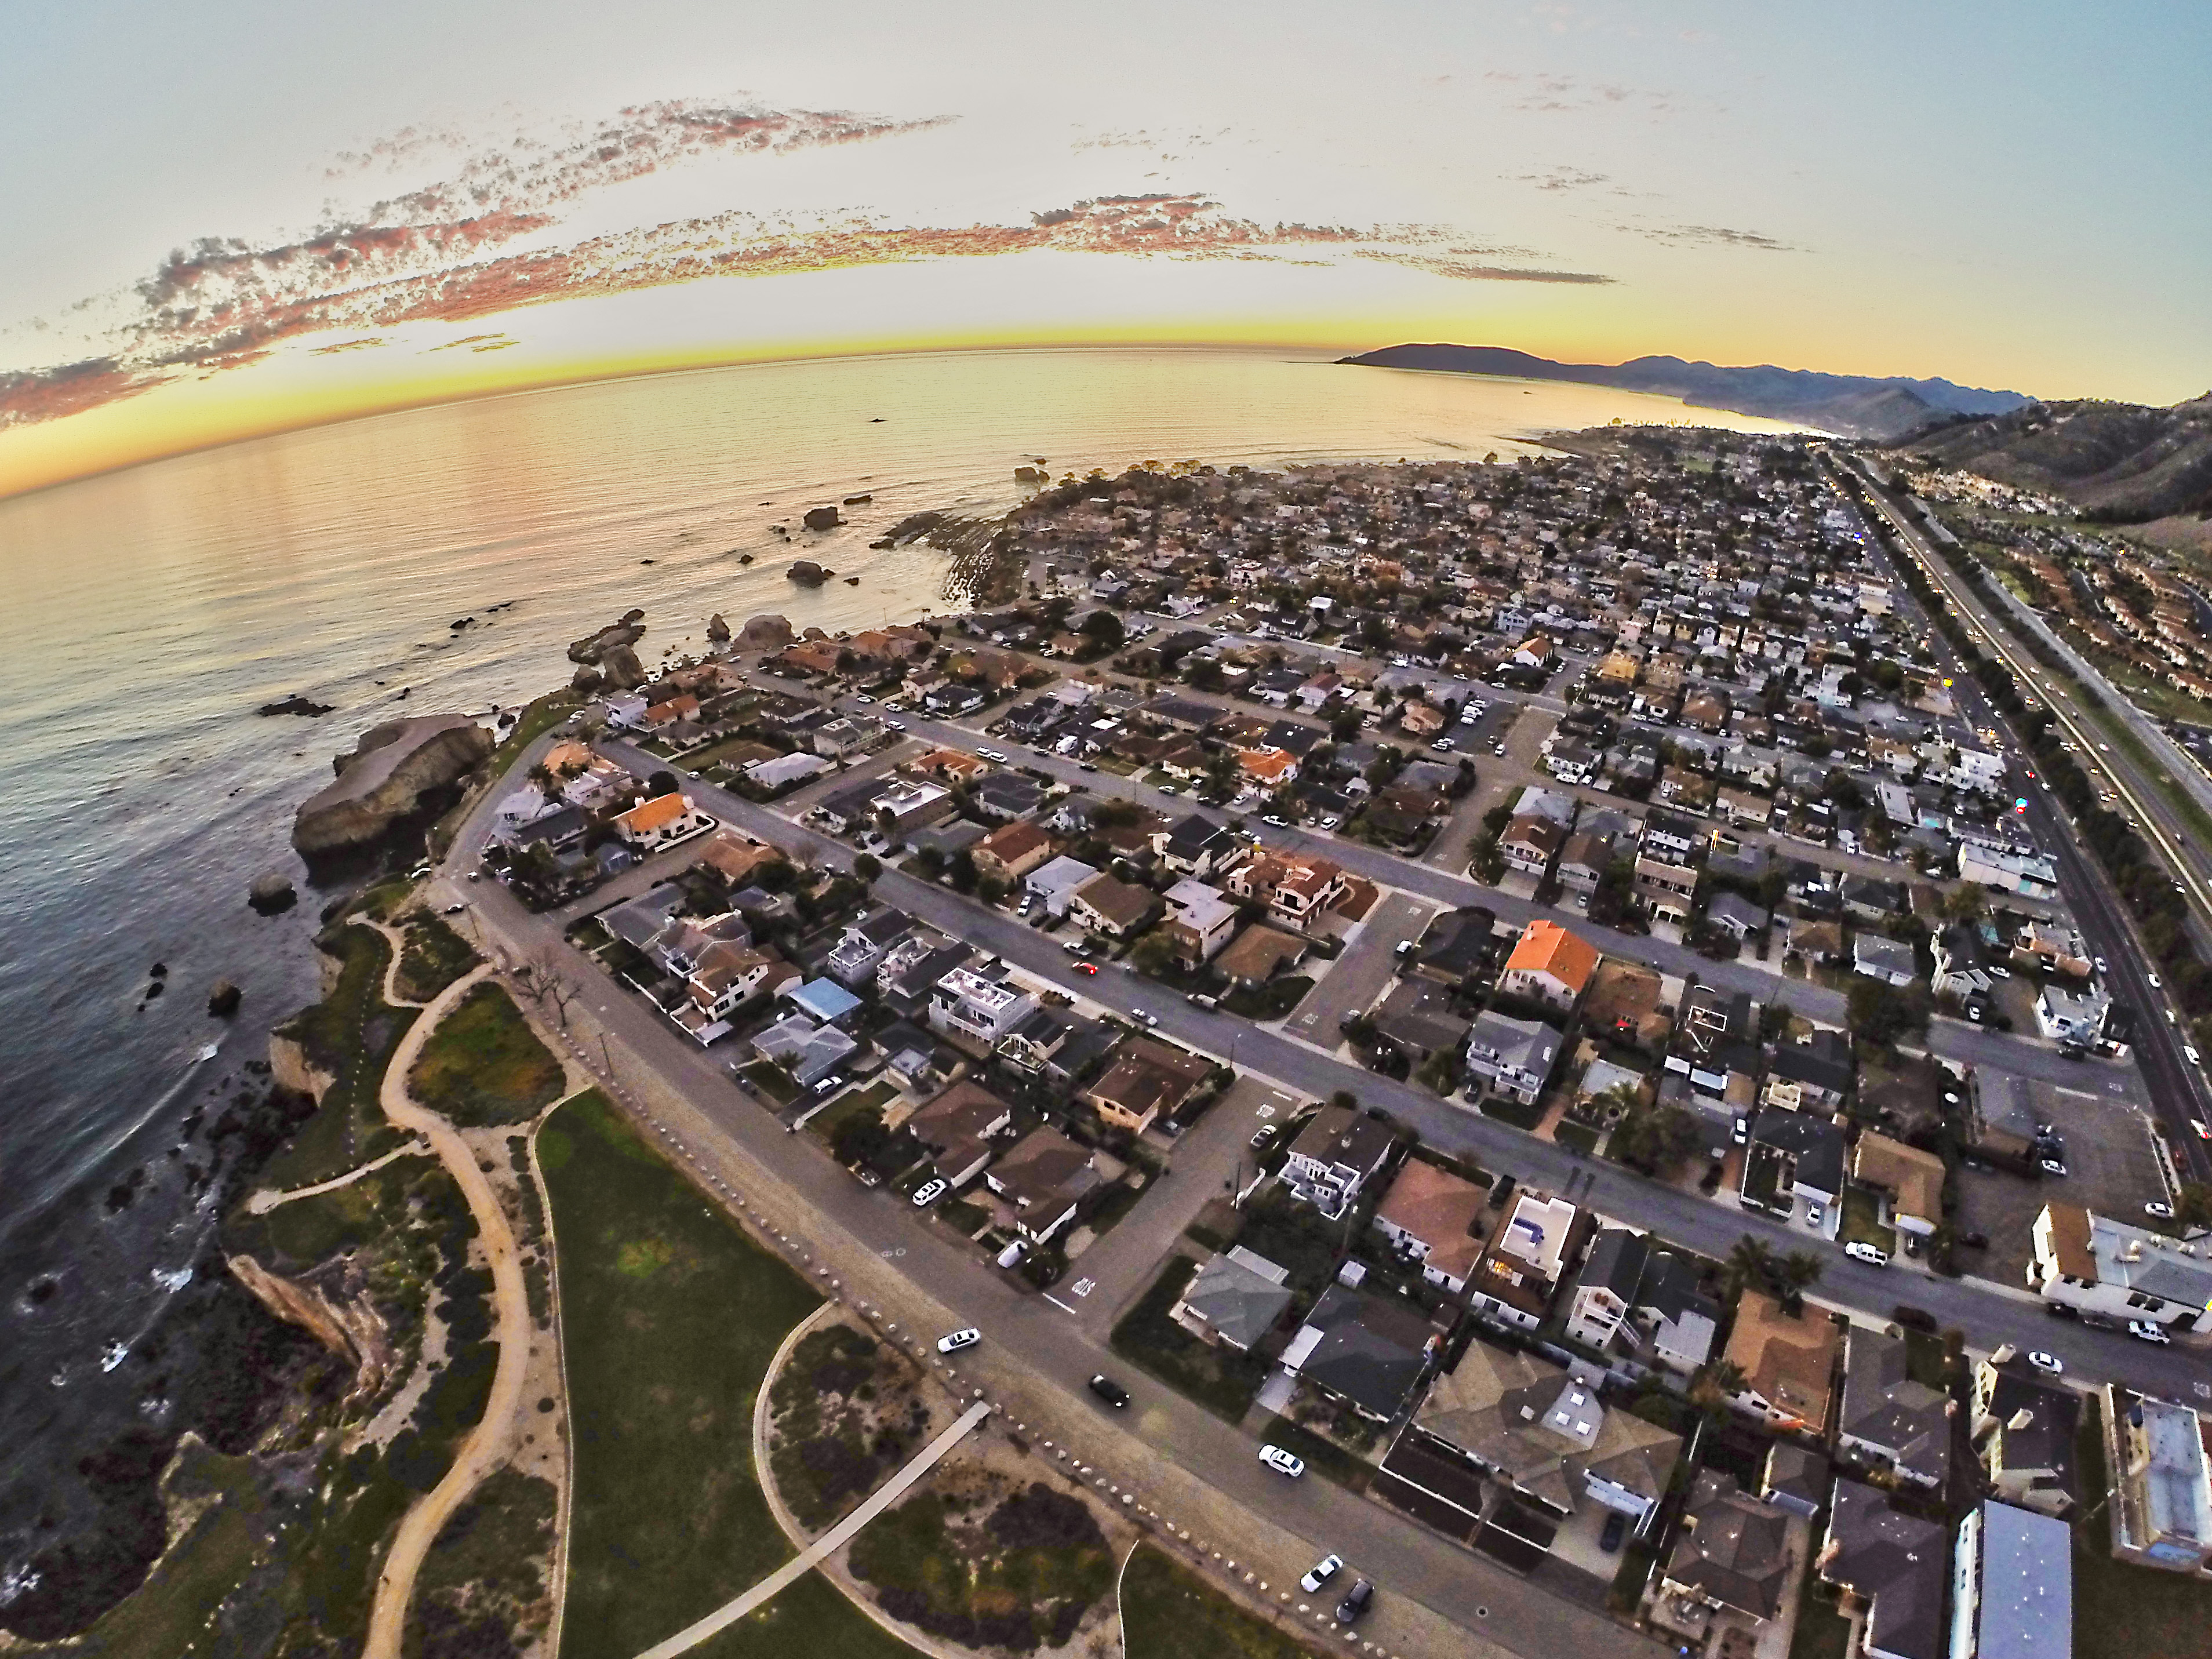 An Even Higher Aerial Photo Taken With A Drone